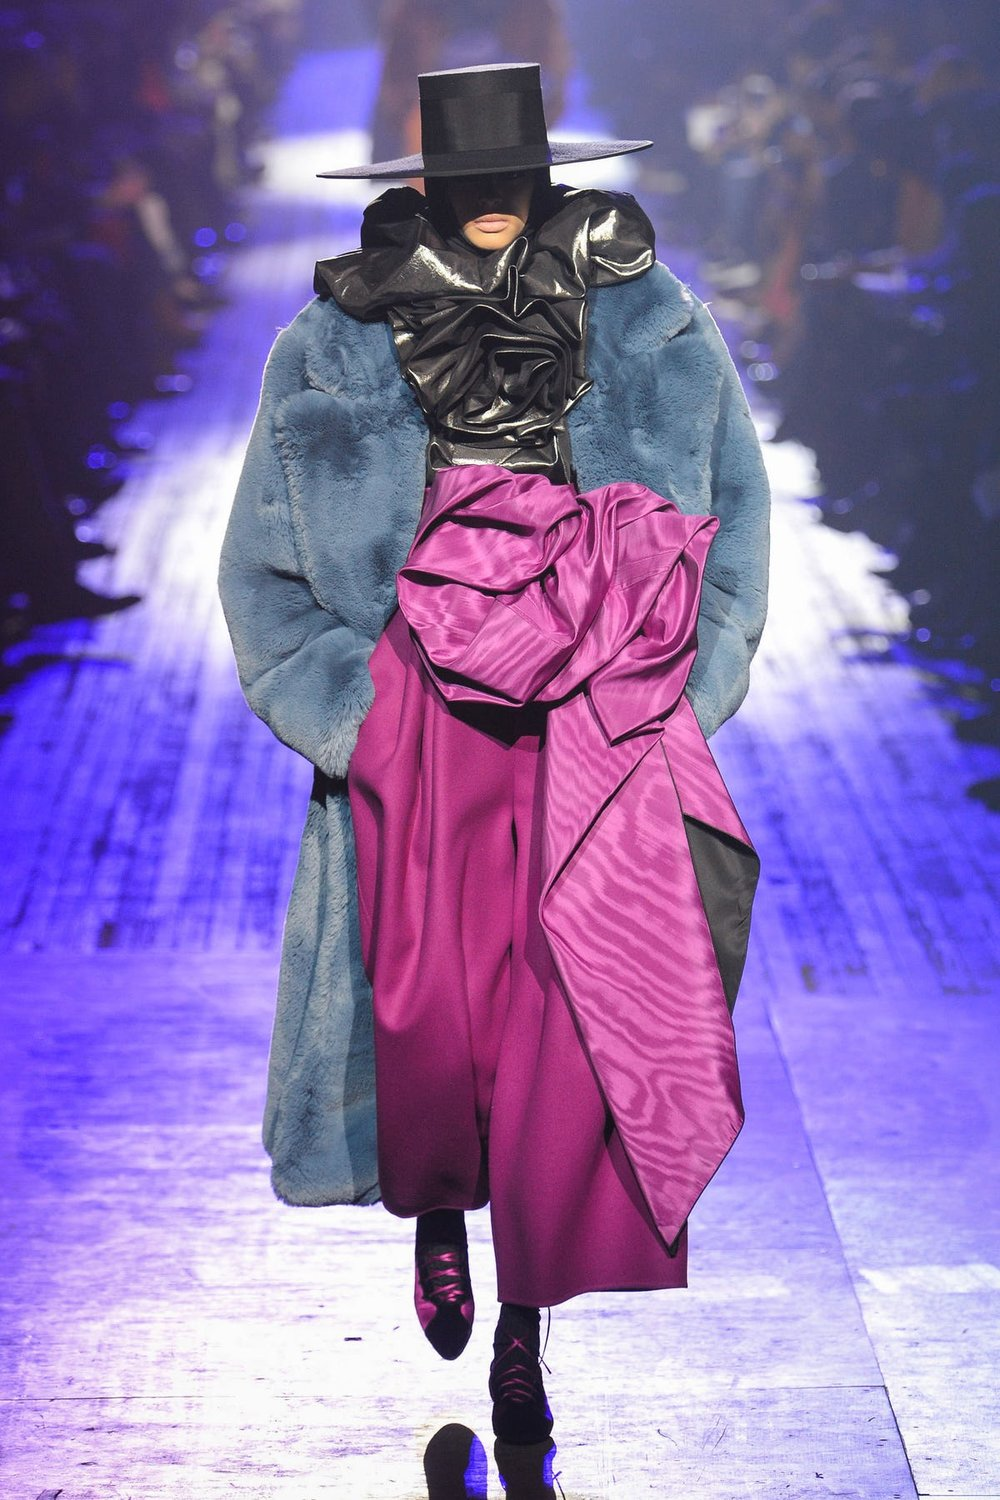 marc_jacobs_look_15_ready_to_wear_autumn_2018.jpeg